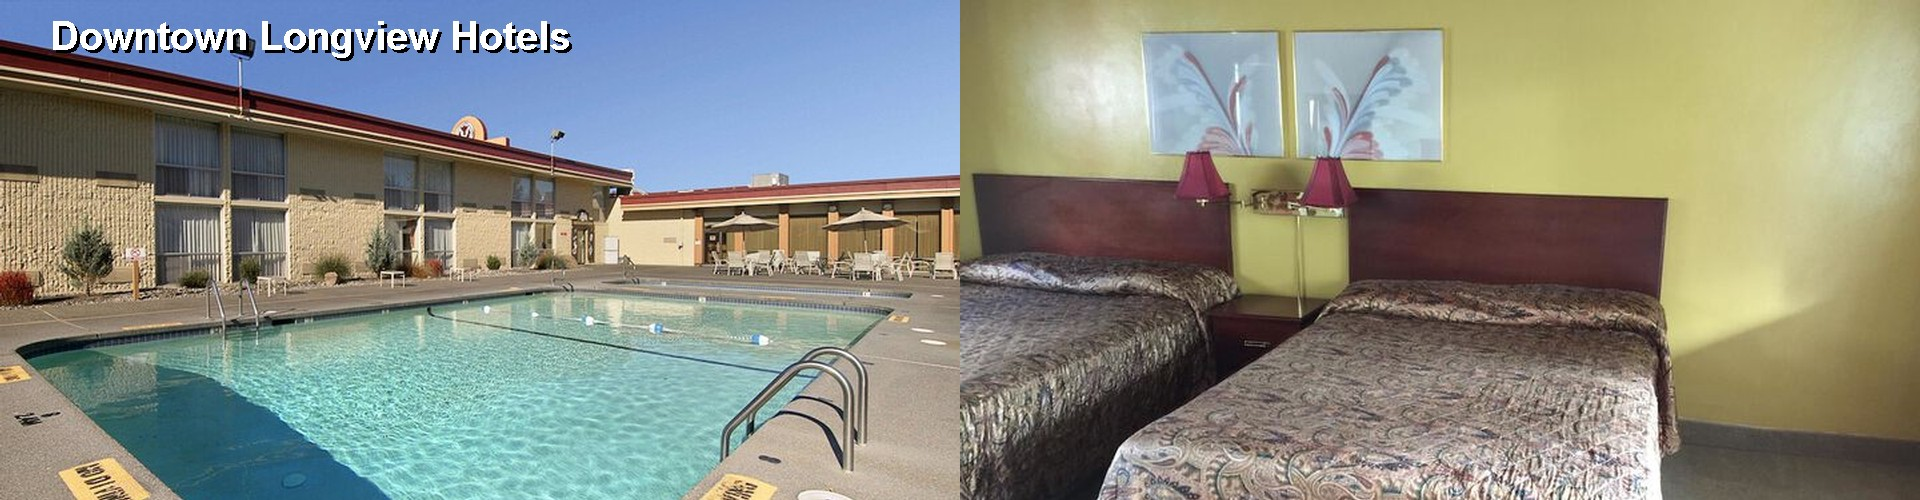 $39+ Hotels Near Downtown Longview WA